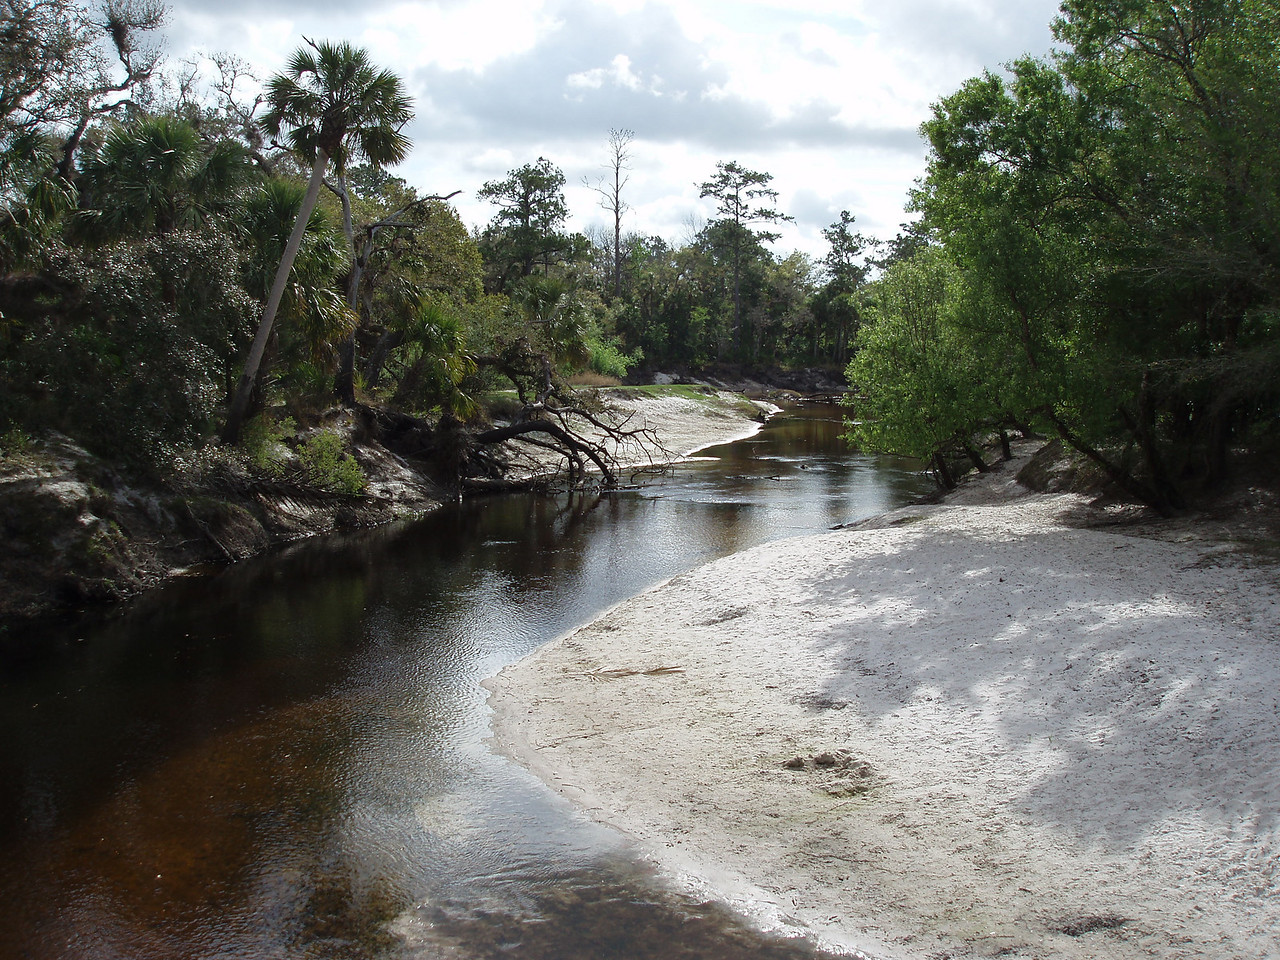 Econlockhatchee River<br /> PHOTO CREDIT: Robert Coveney / Florida Trail Association